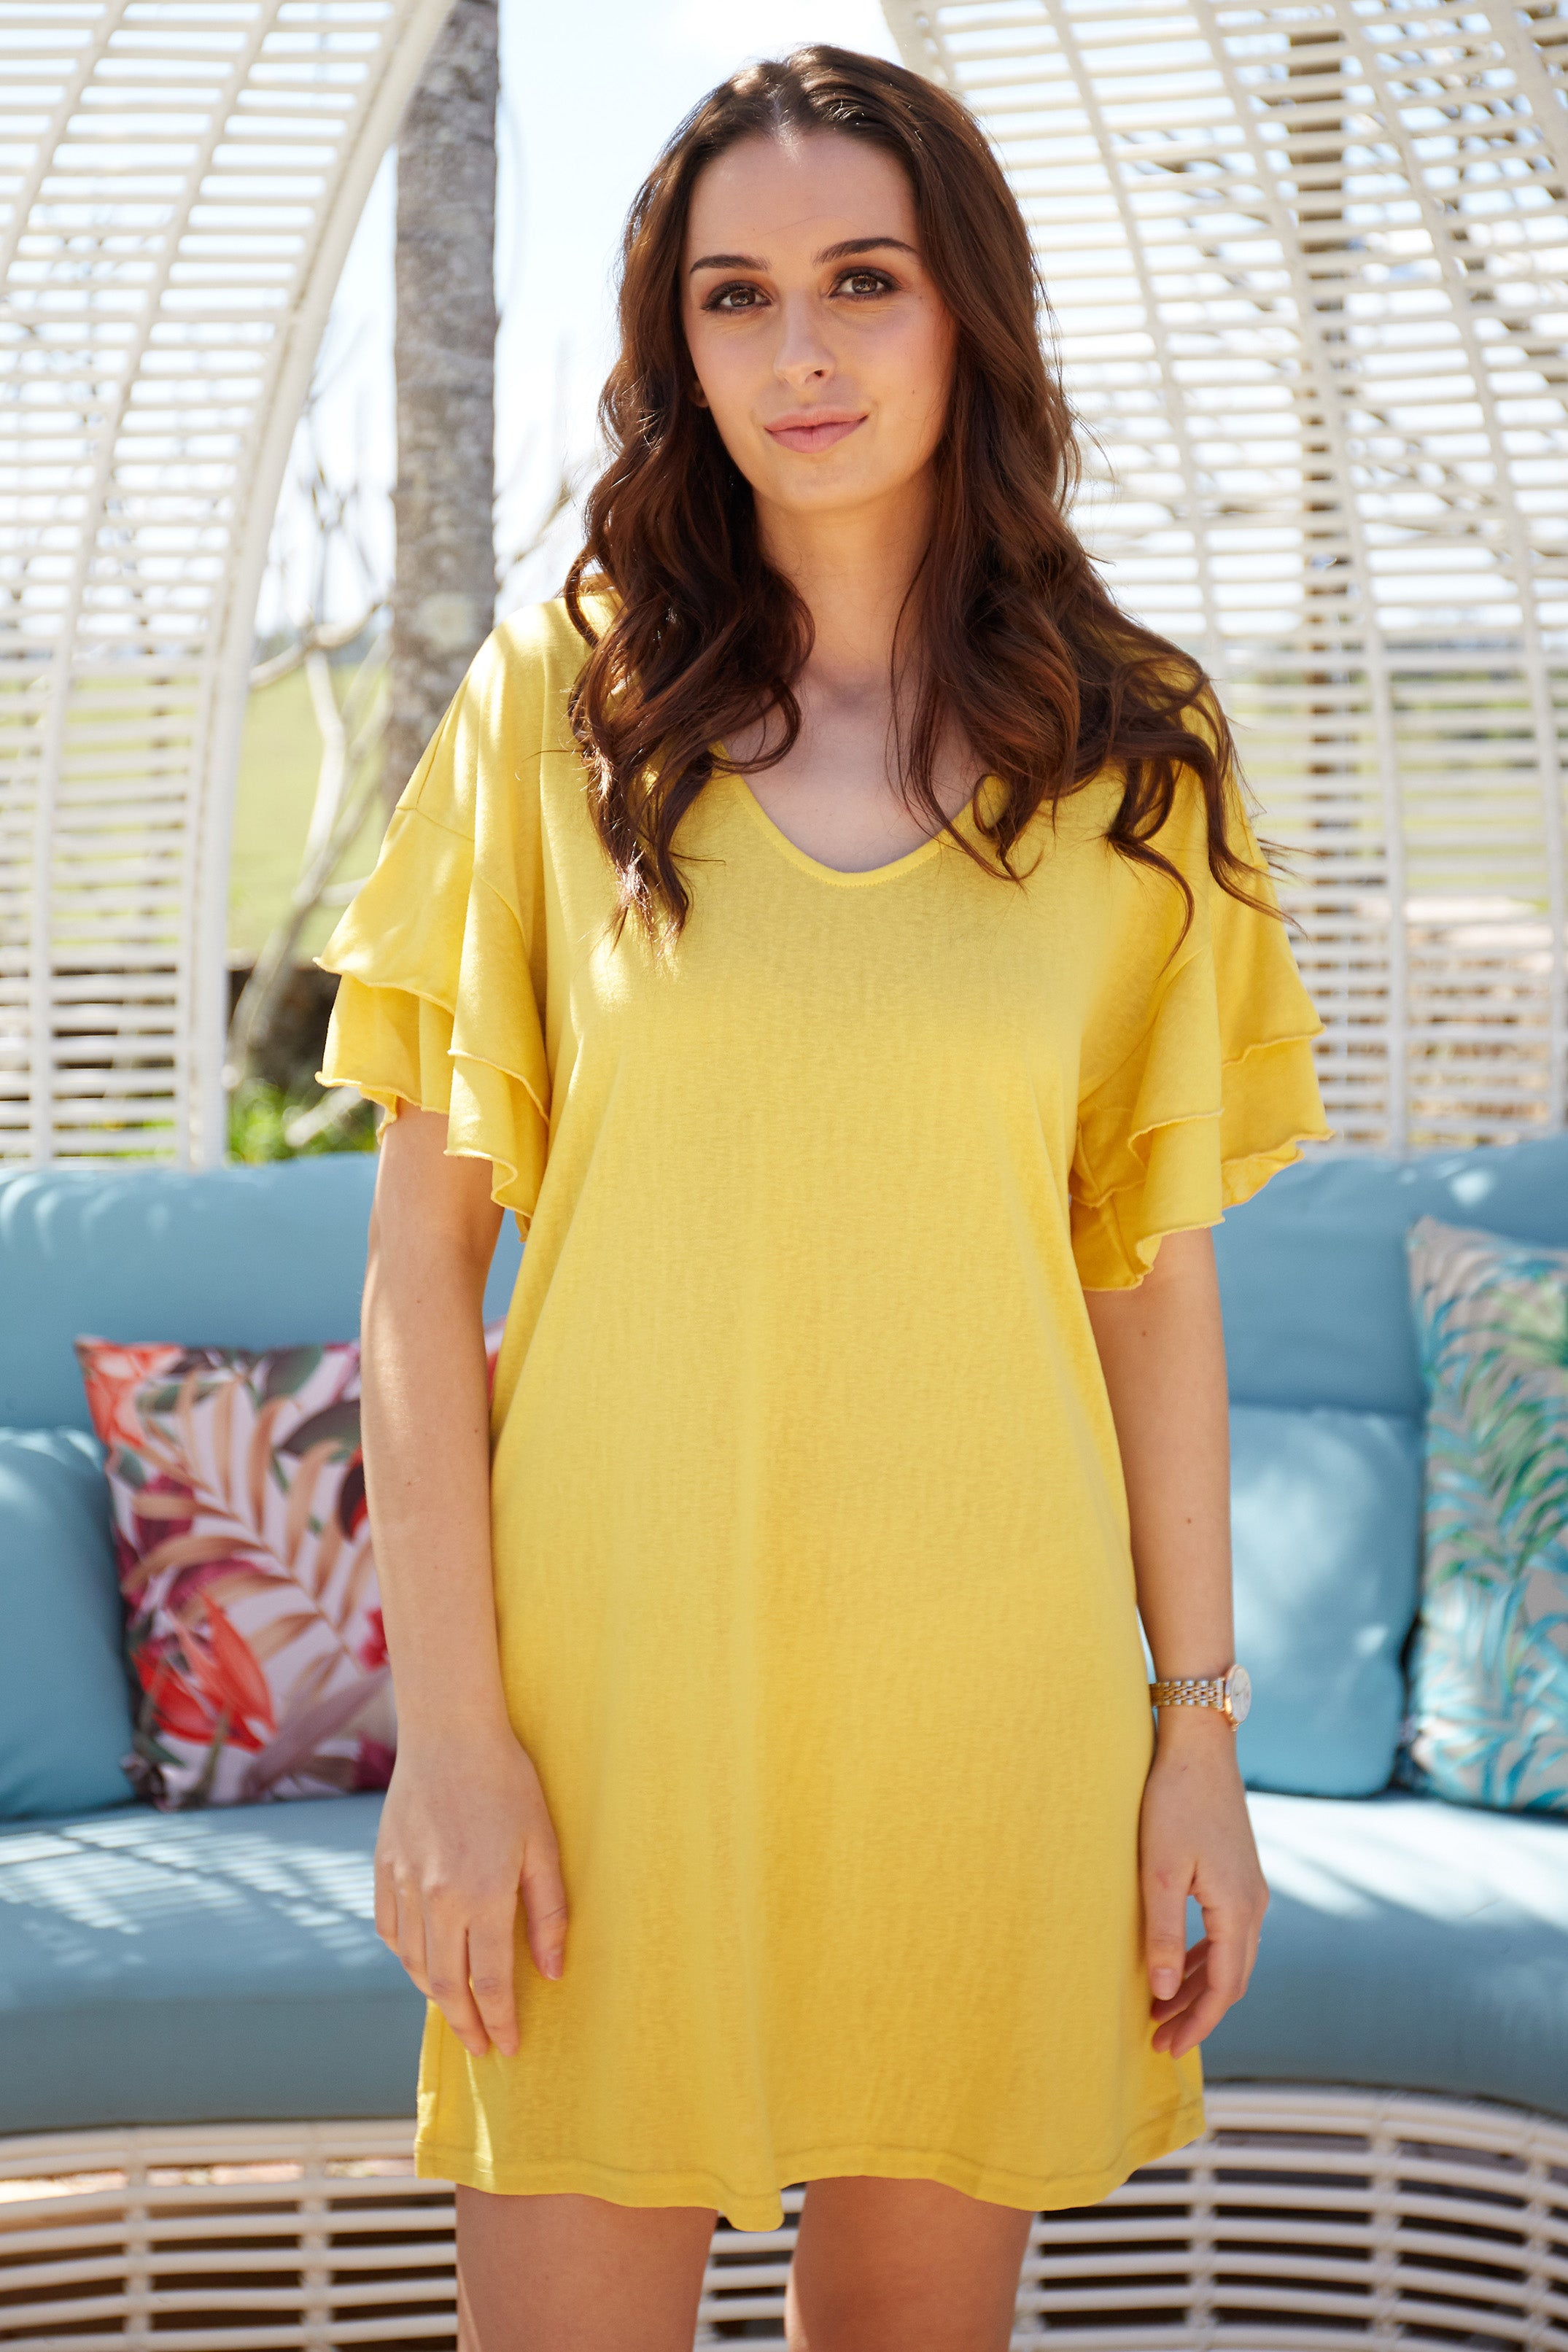 Betty Basics Sydney Dress in Daffodil Yellow